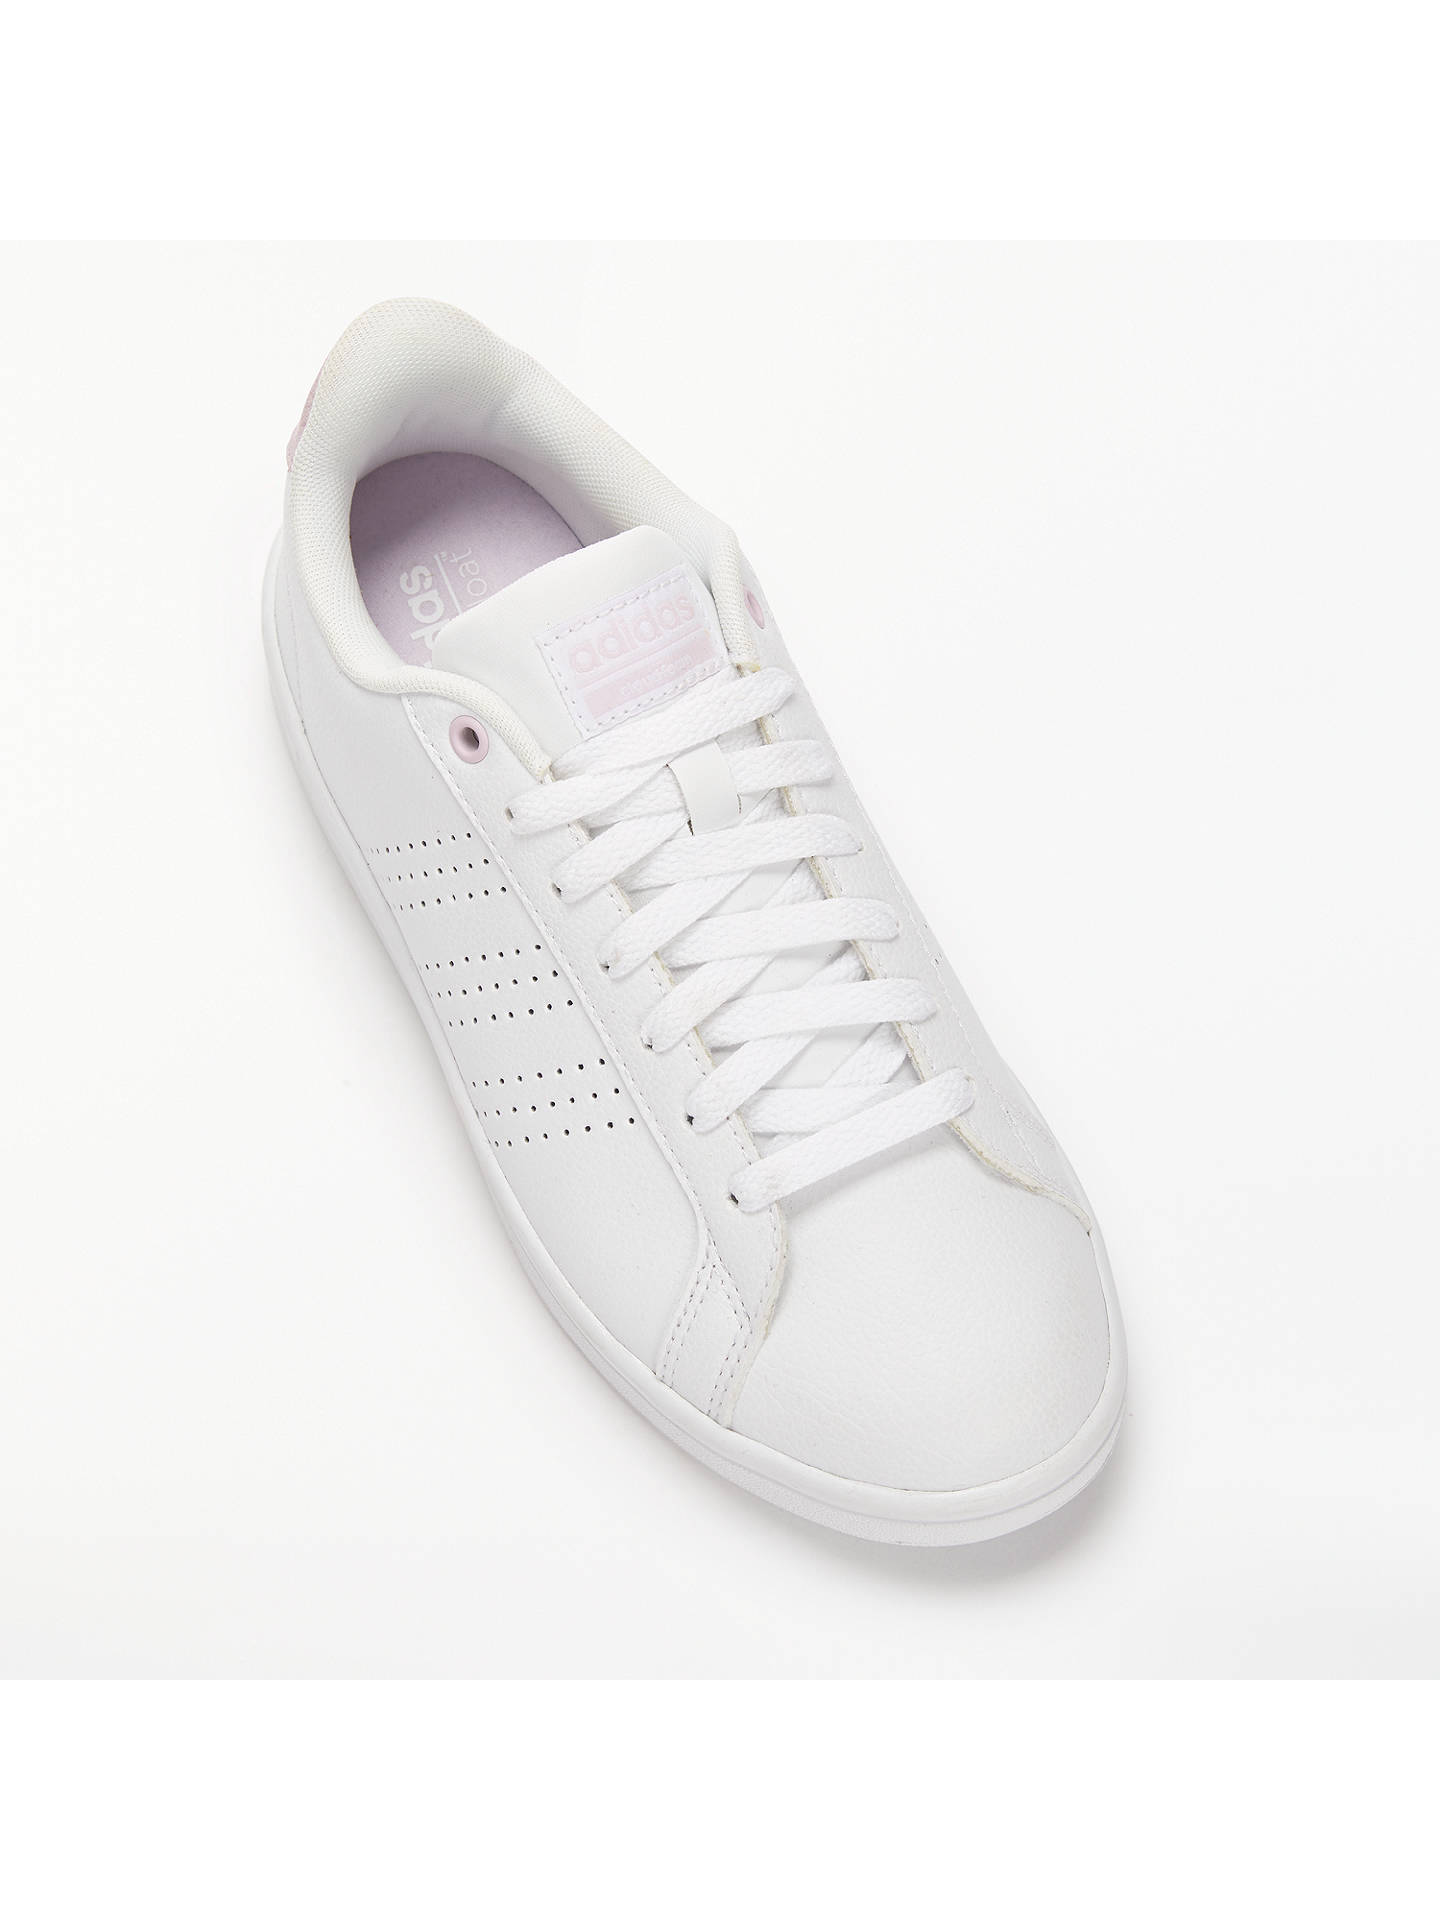 best loved 1546b dec5c ... Buy adidas Neo Cloudfoam Advantage Women s Trainers, White Pink, 4  Online at johnlewis ...